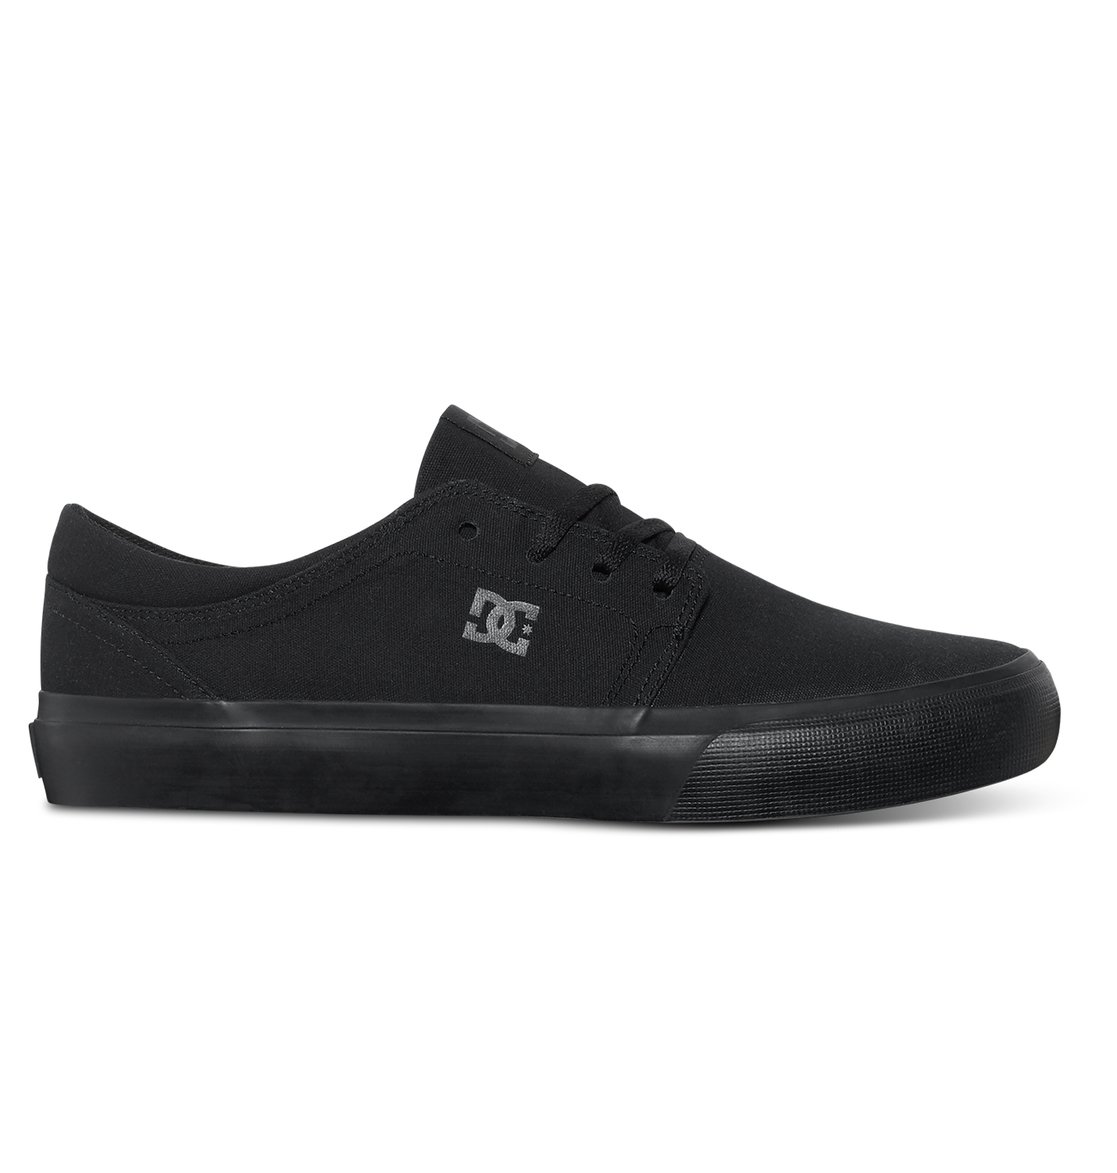 dc shoes Trase TX - Scarpe da Uomo - Gray - DC Shoes